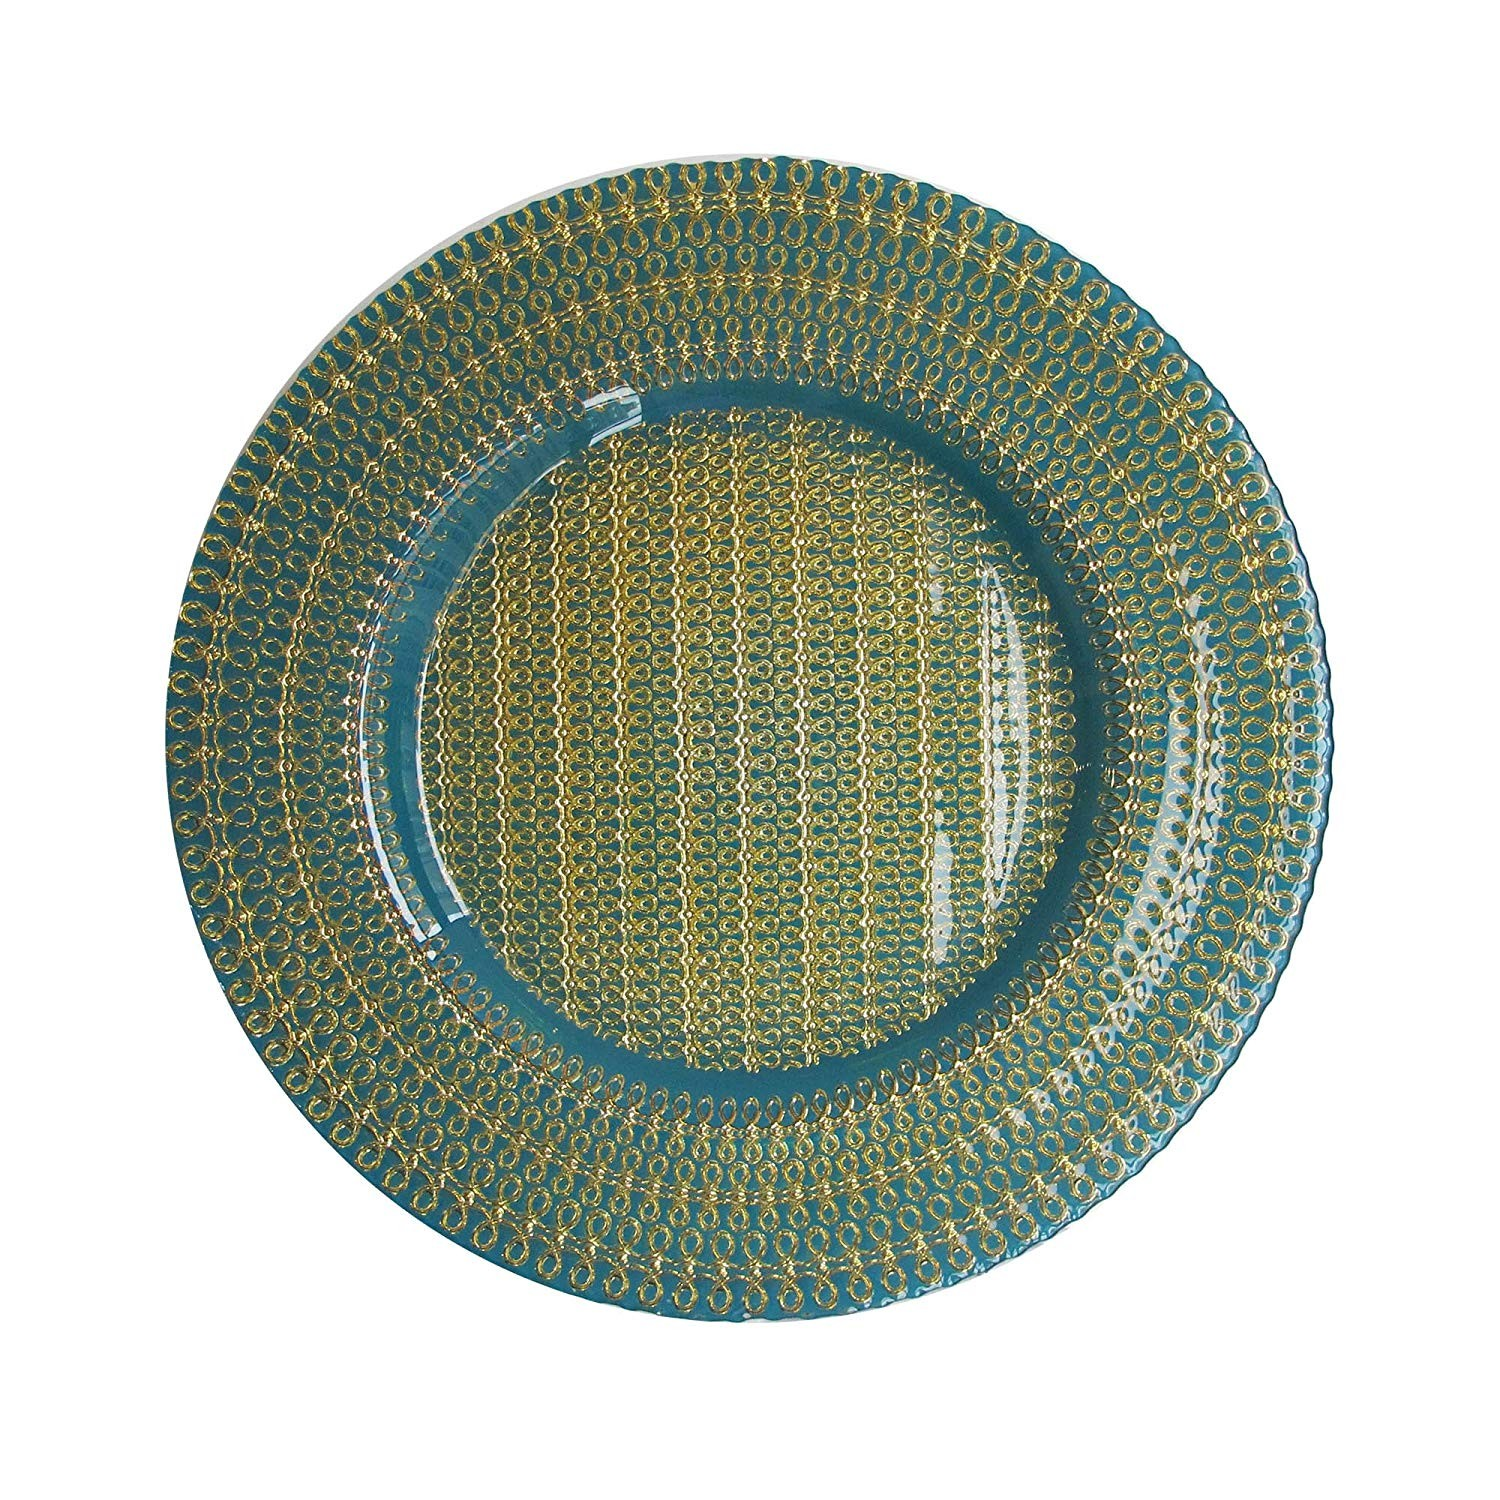 ChargeIt by Jay Celia Glass Charger Plate, Aqua/Gold